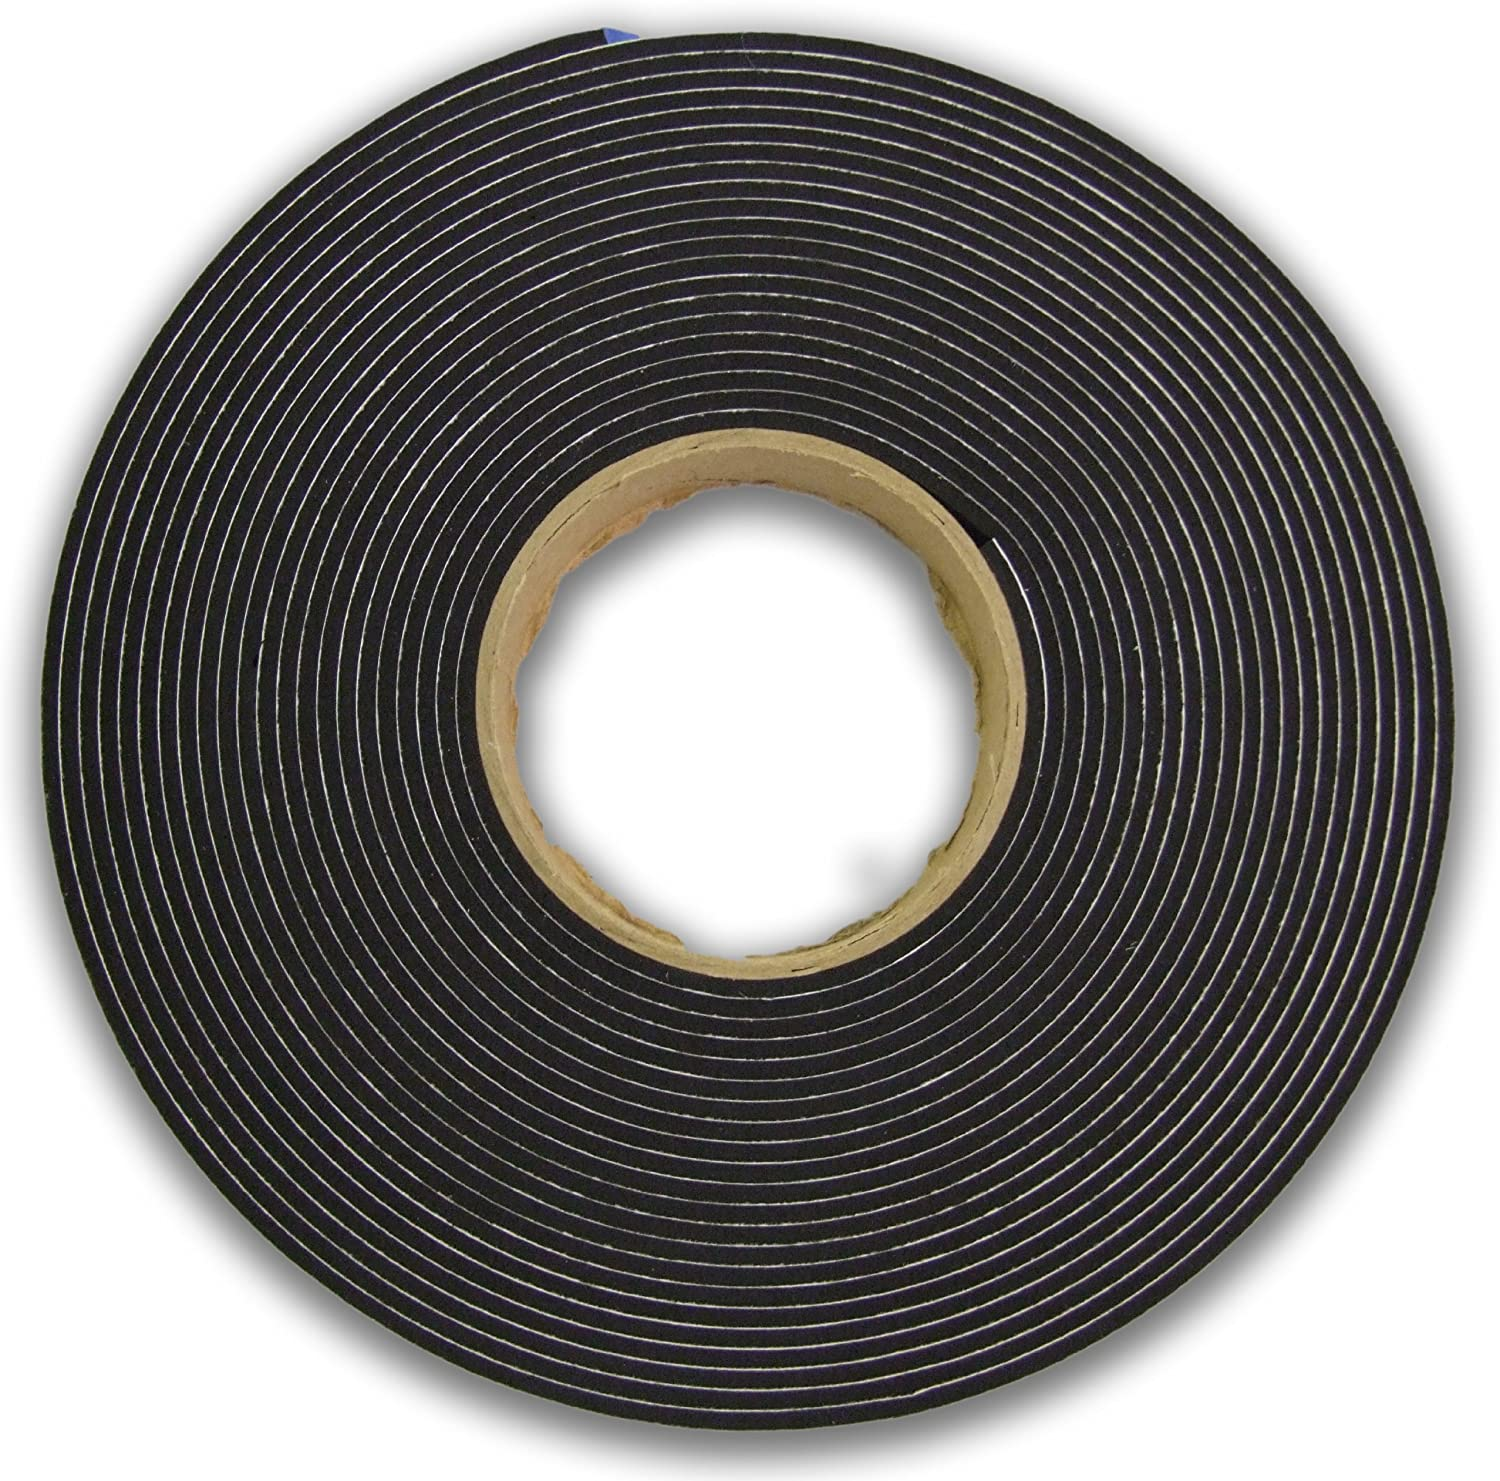 neoprene rubber self adhesive strip 15mm wide x 6mm thick x 10m long